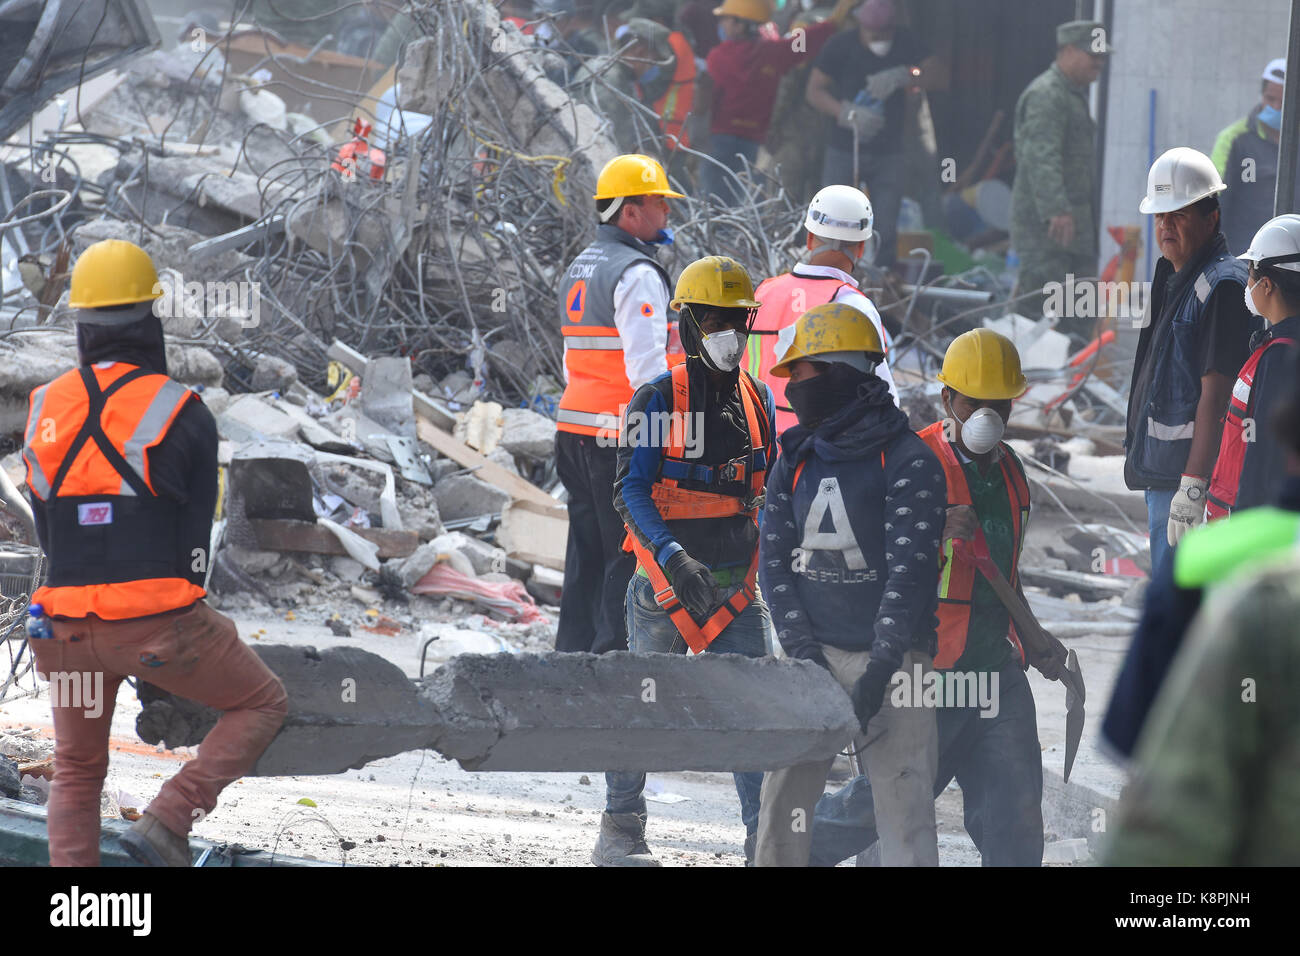 7.1 richter earthquake occurred, where about 225 people died, volunteers continue with rescue work on September - Stock Image